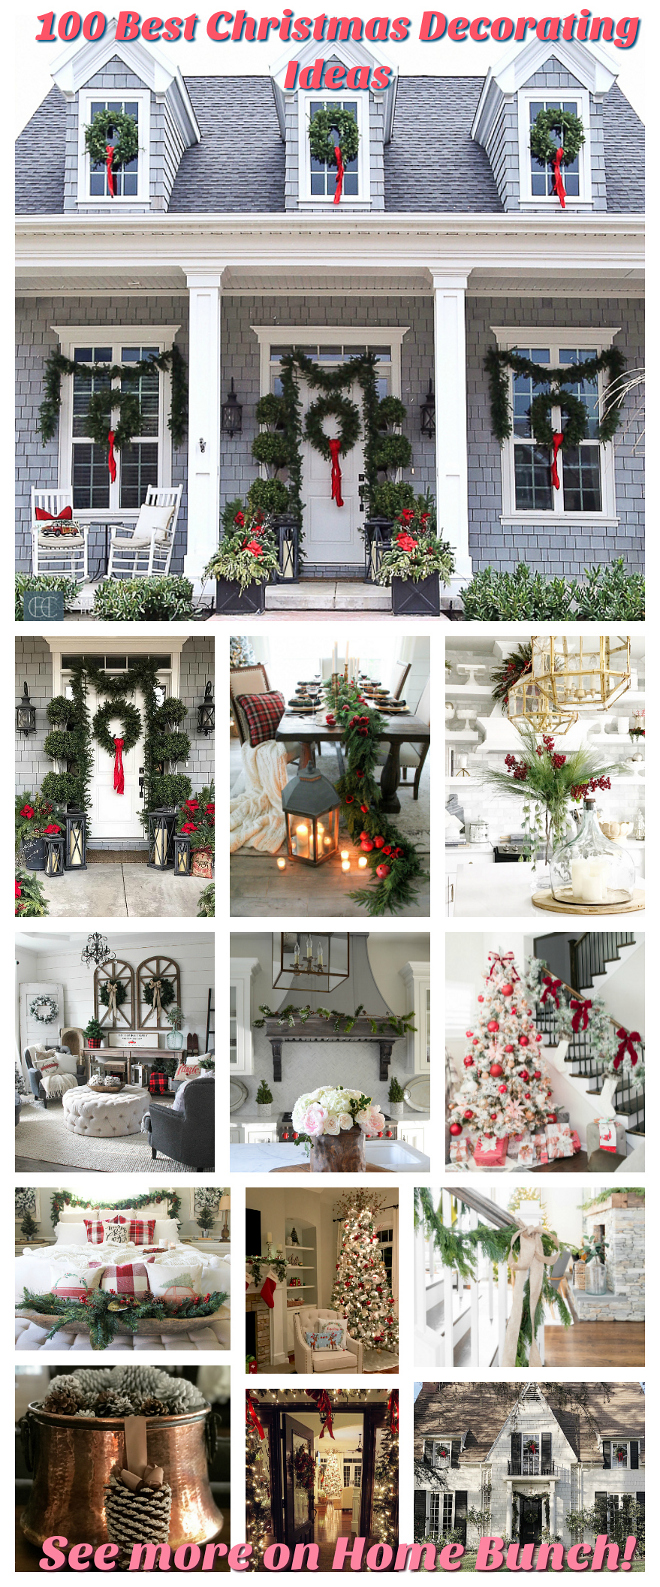 100 Best Christmas Decorating Ideas See more pictures on Home Bunch 100 Best Christmas Decorating Ideas